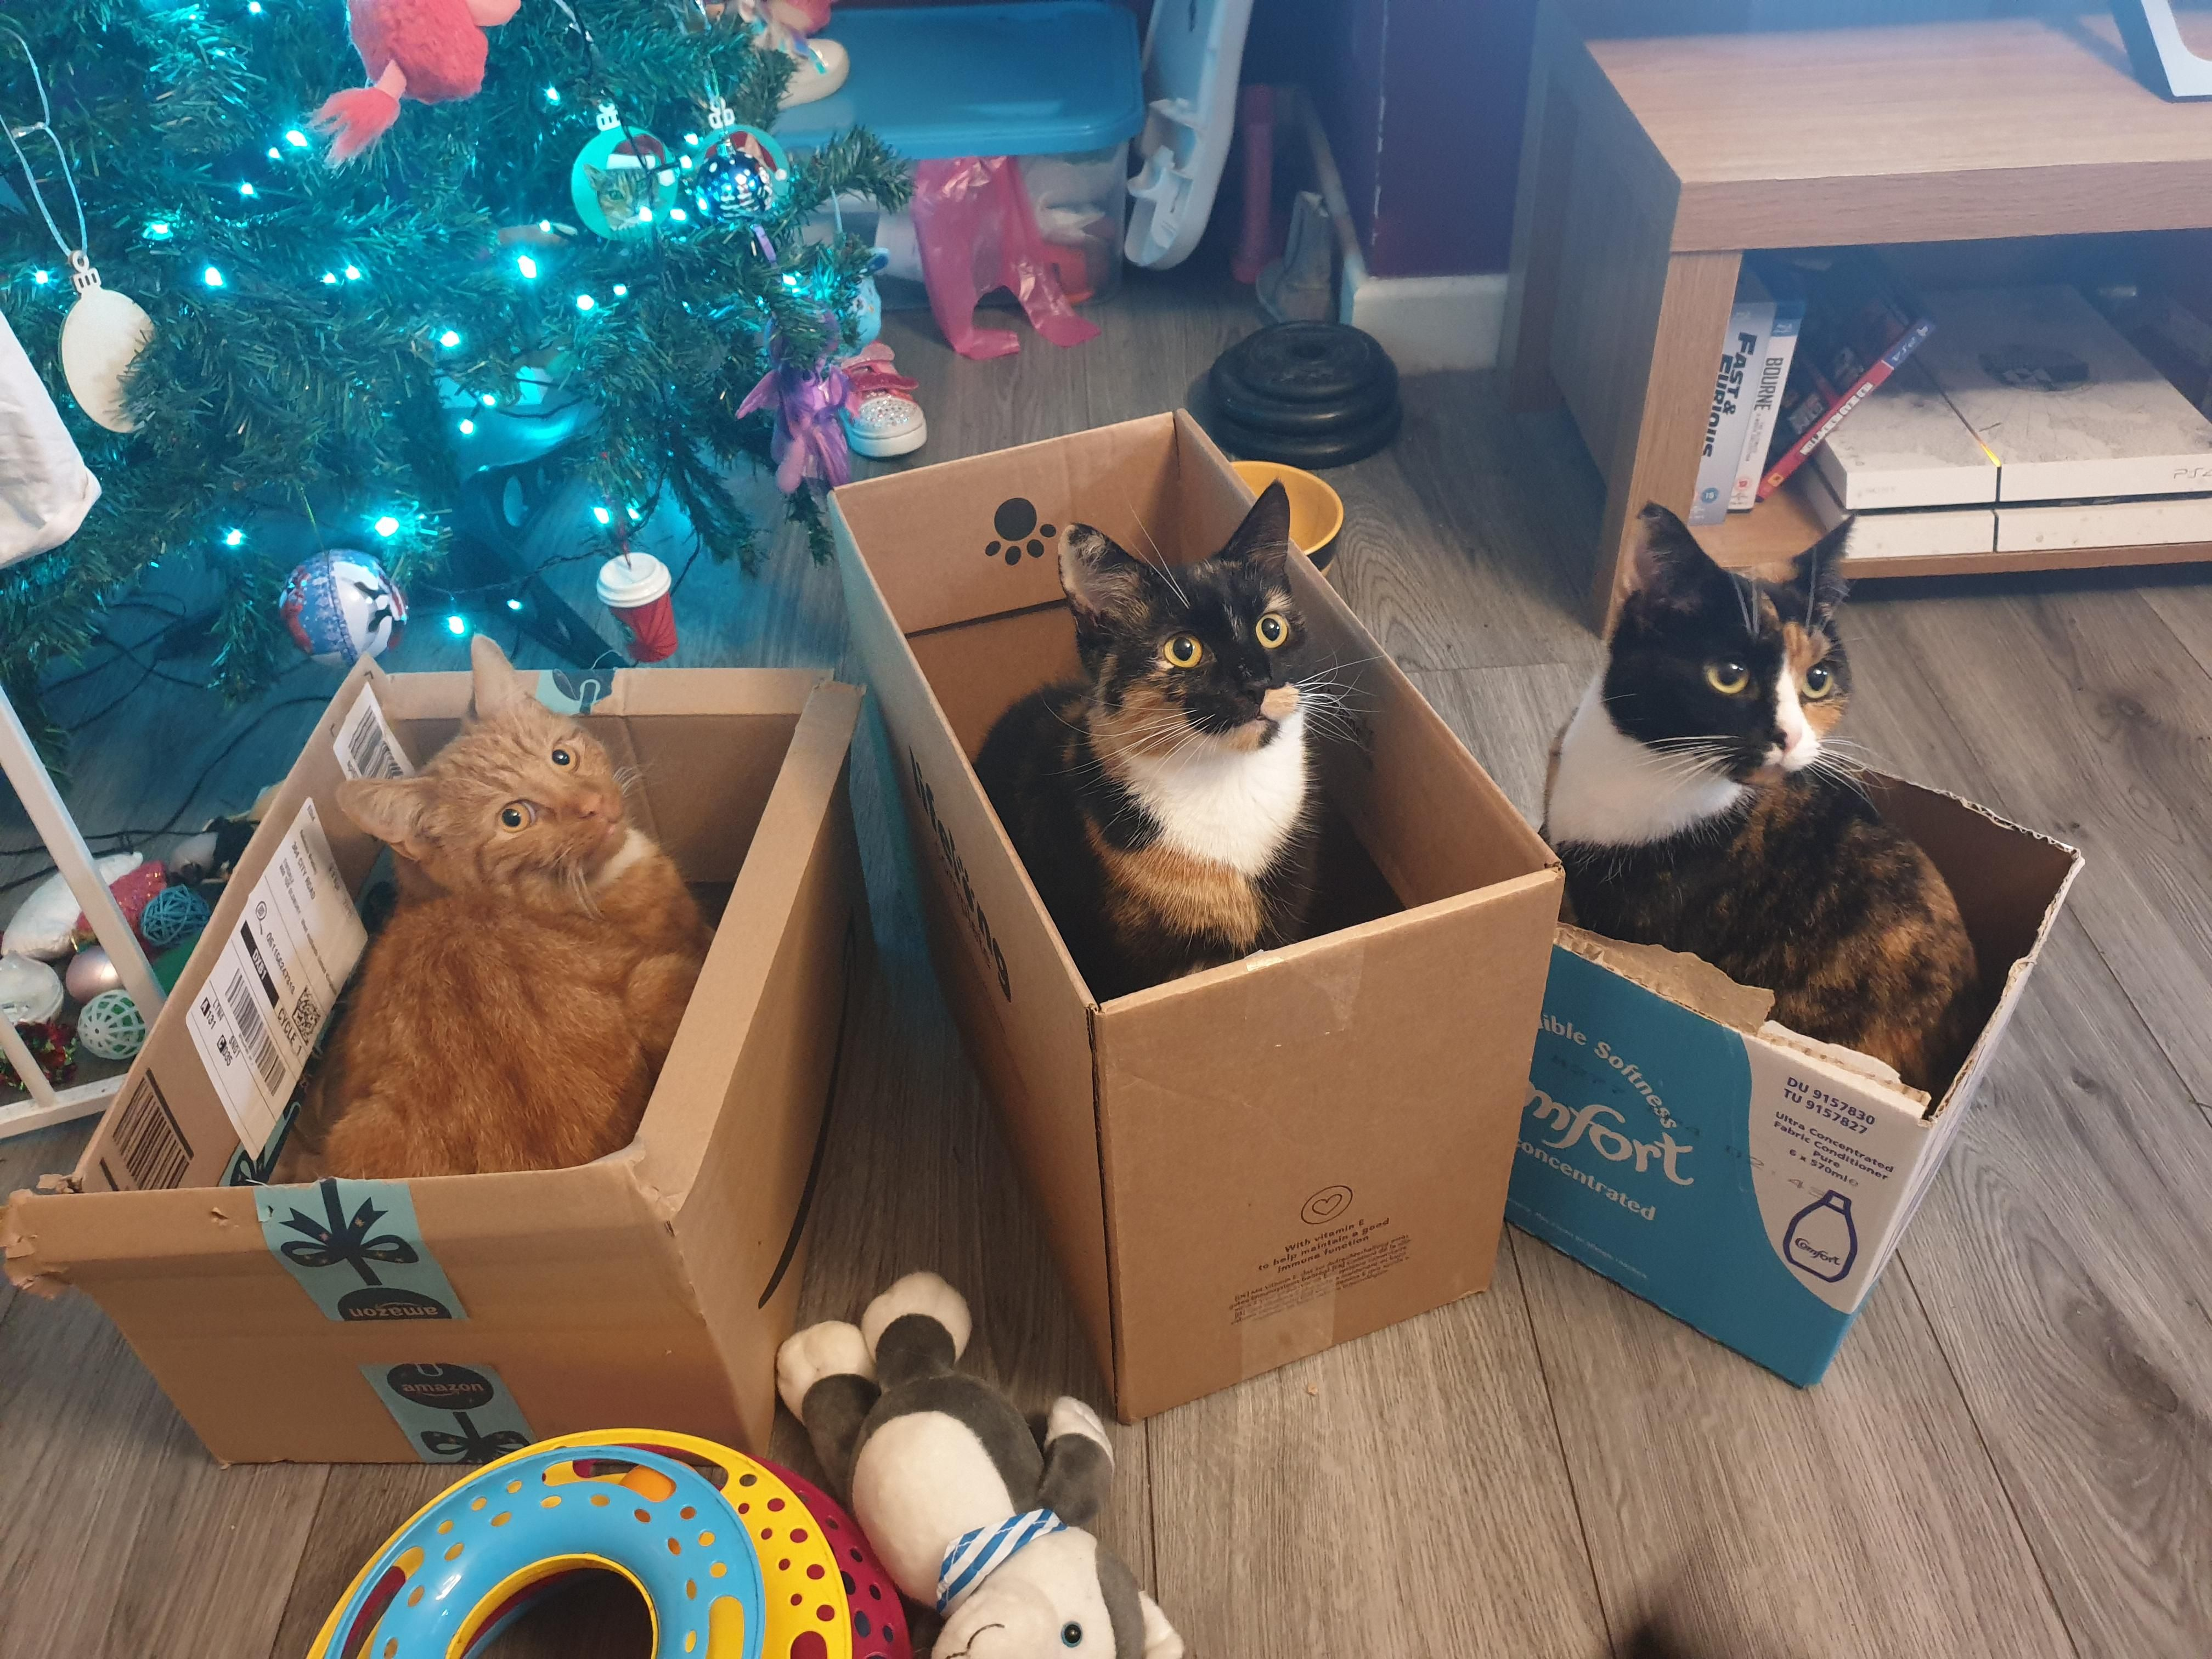 So Cats Like Boxes Who Knew Funny Cat Images Cute Kitten Gif Christmas Cats